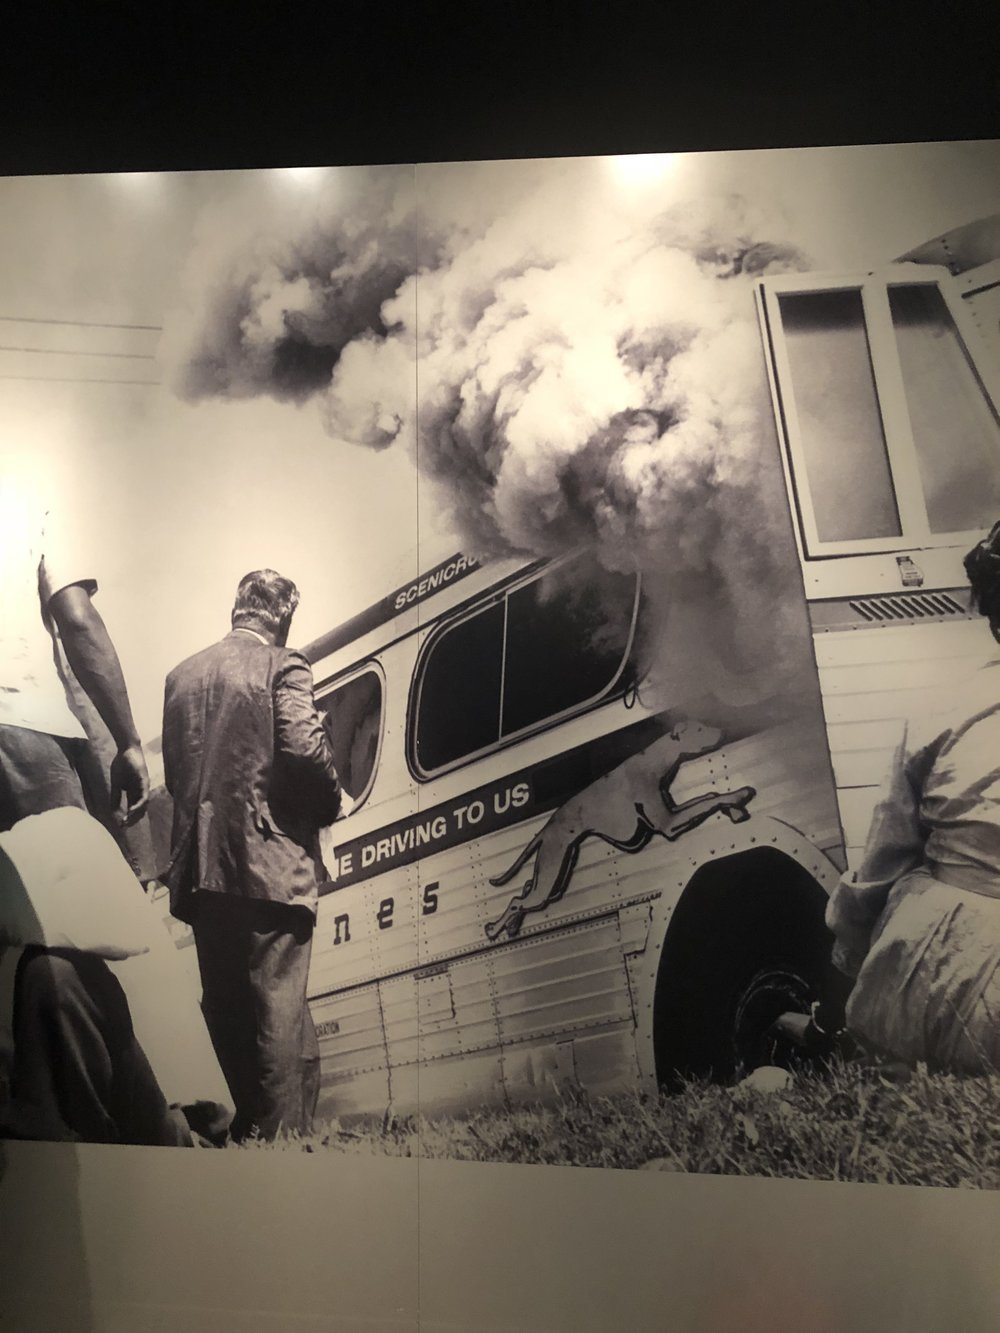 Image of the bus being burned